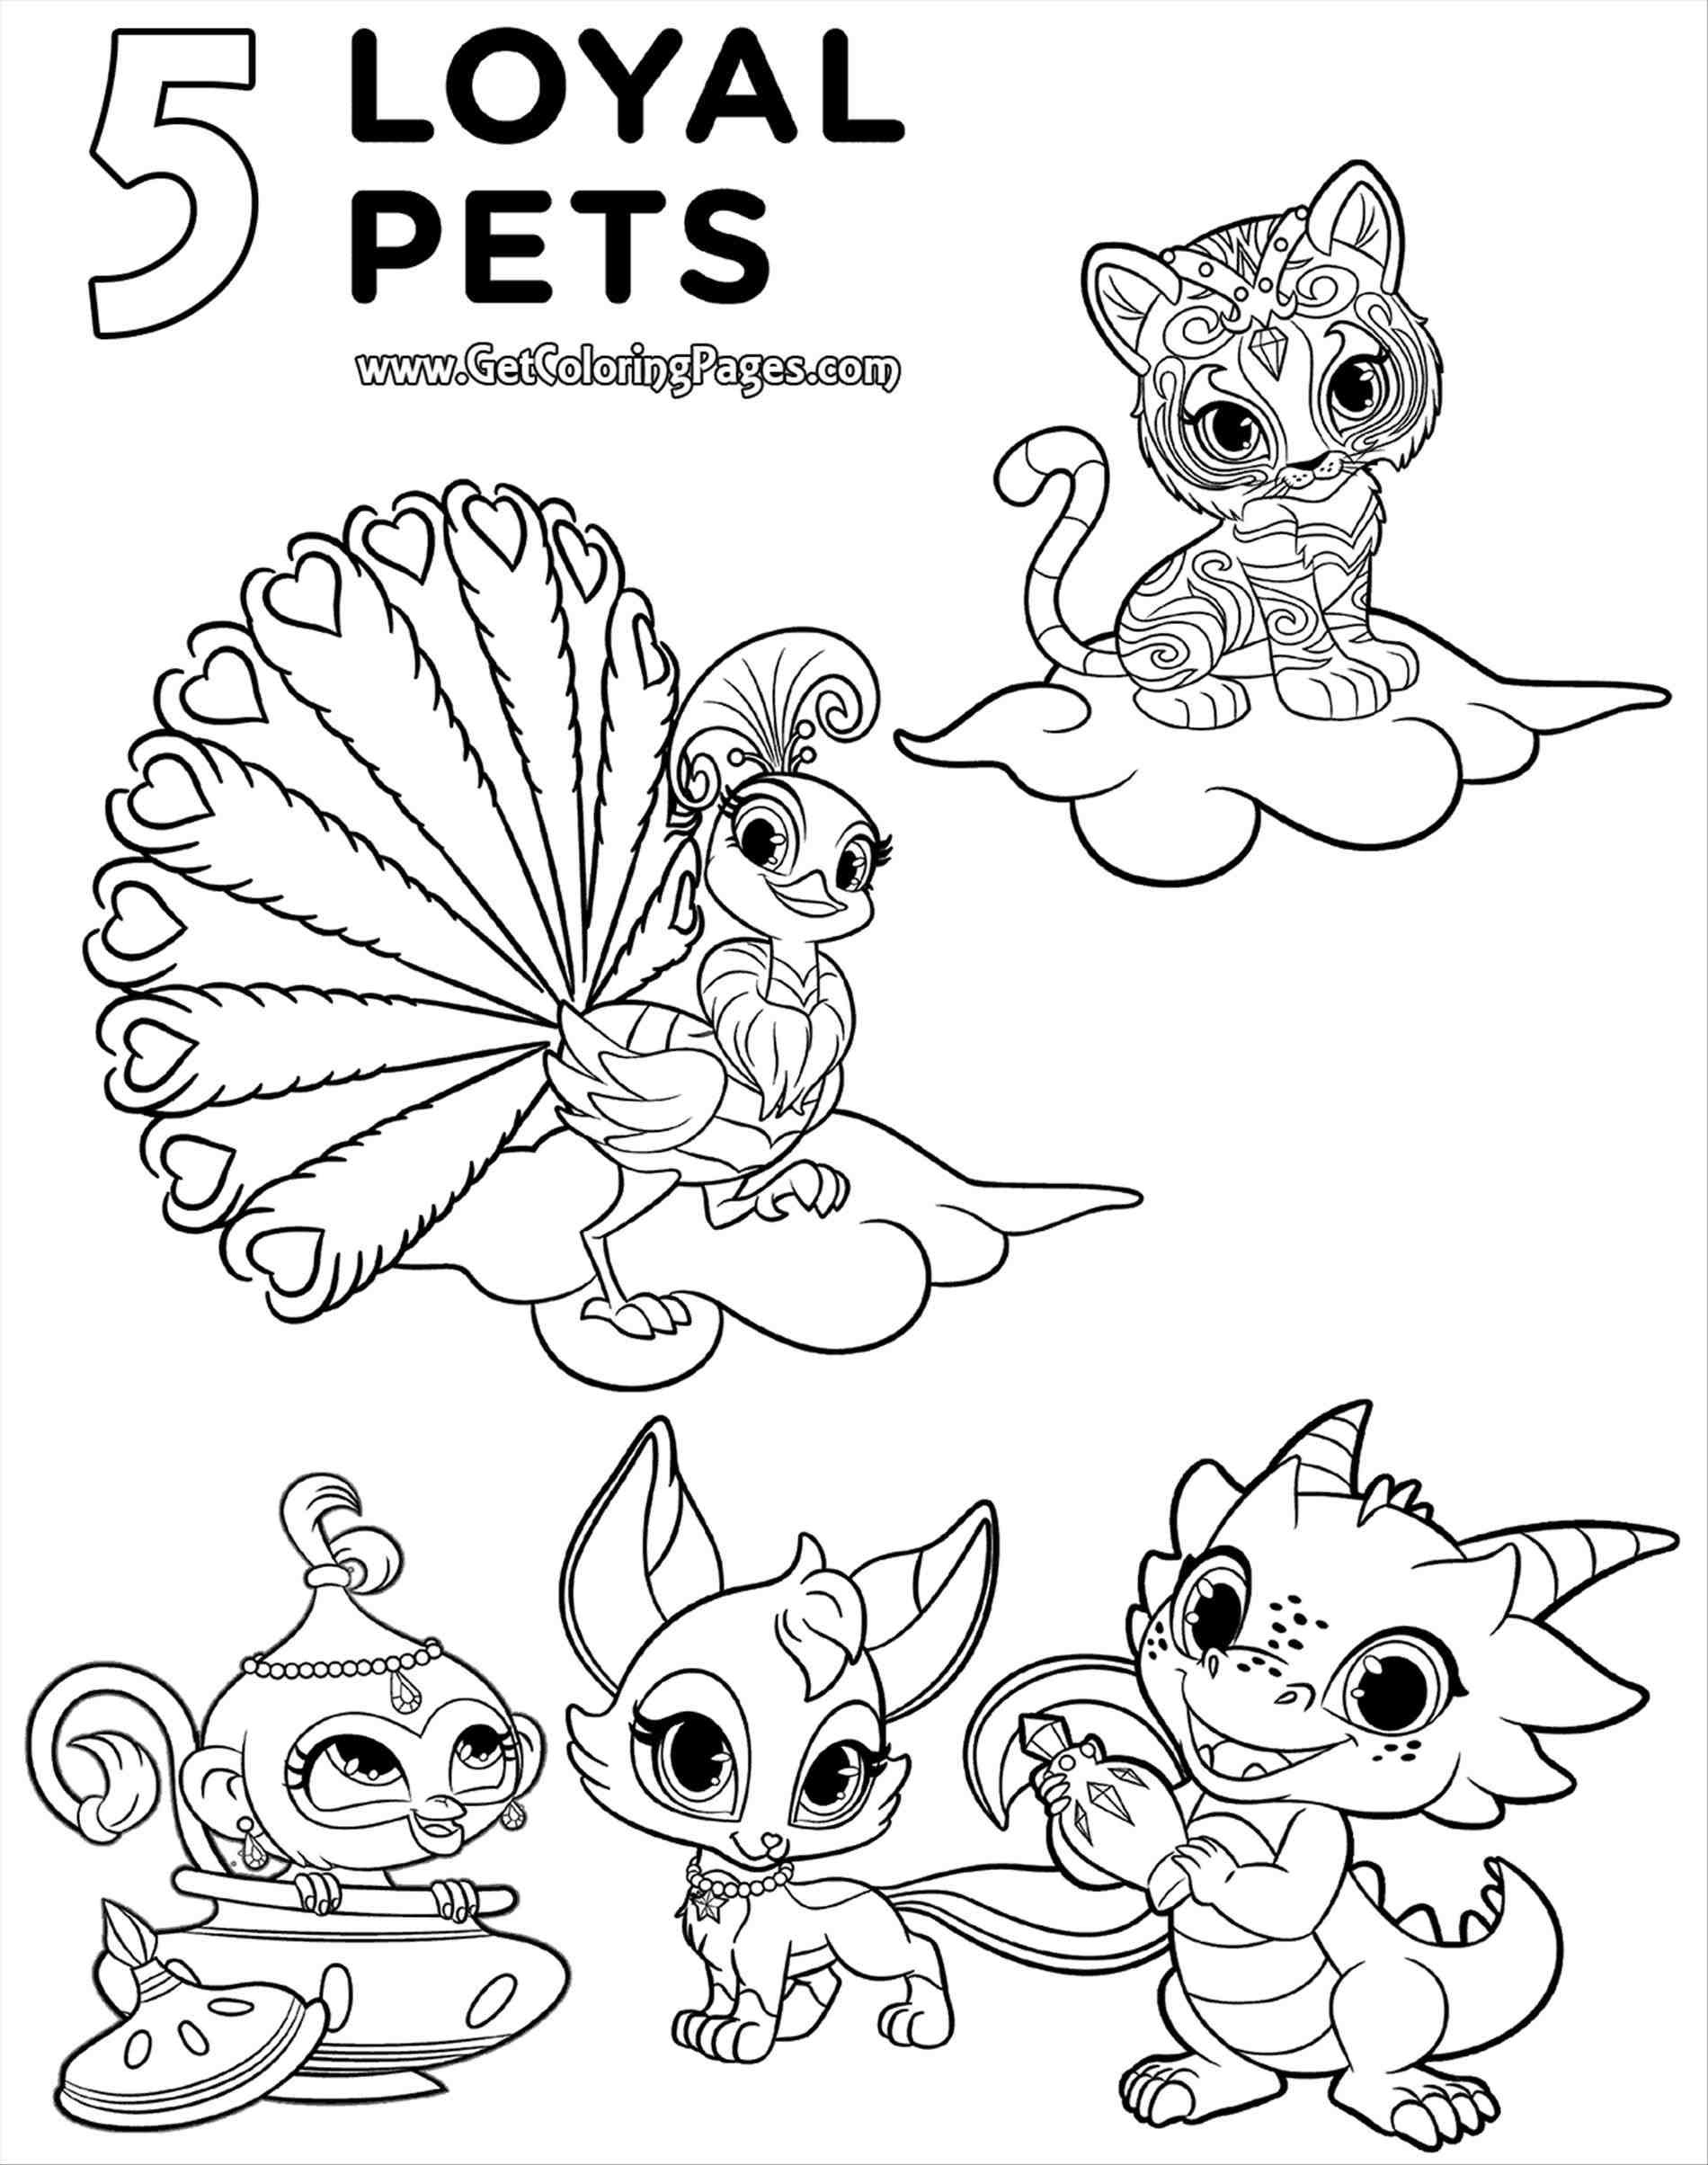 nick jr coloring pages Collection-Nick Jr Coloring Pages Free 4-s